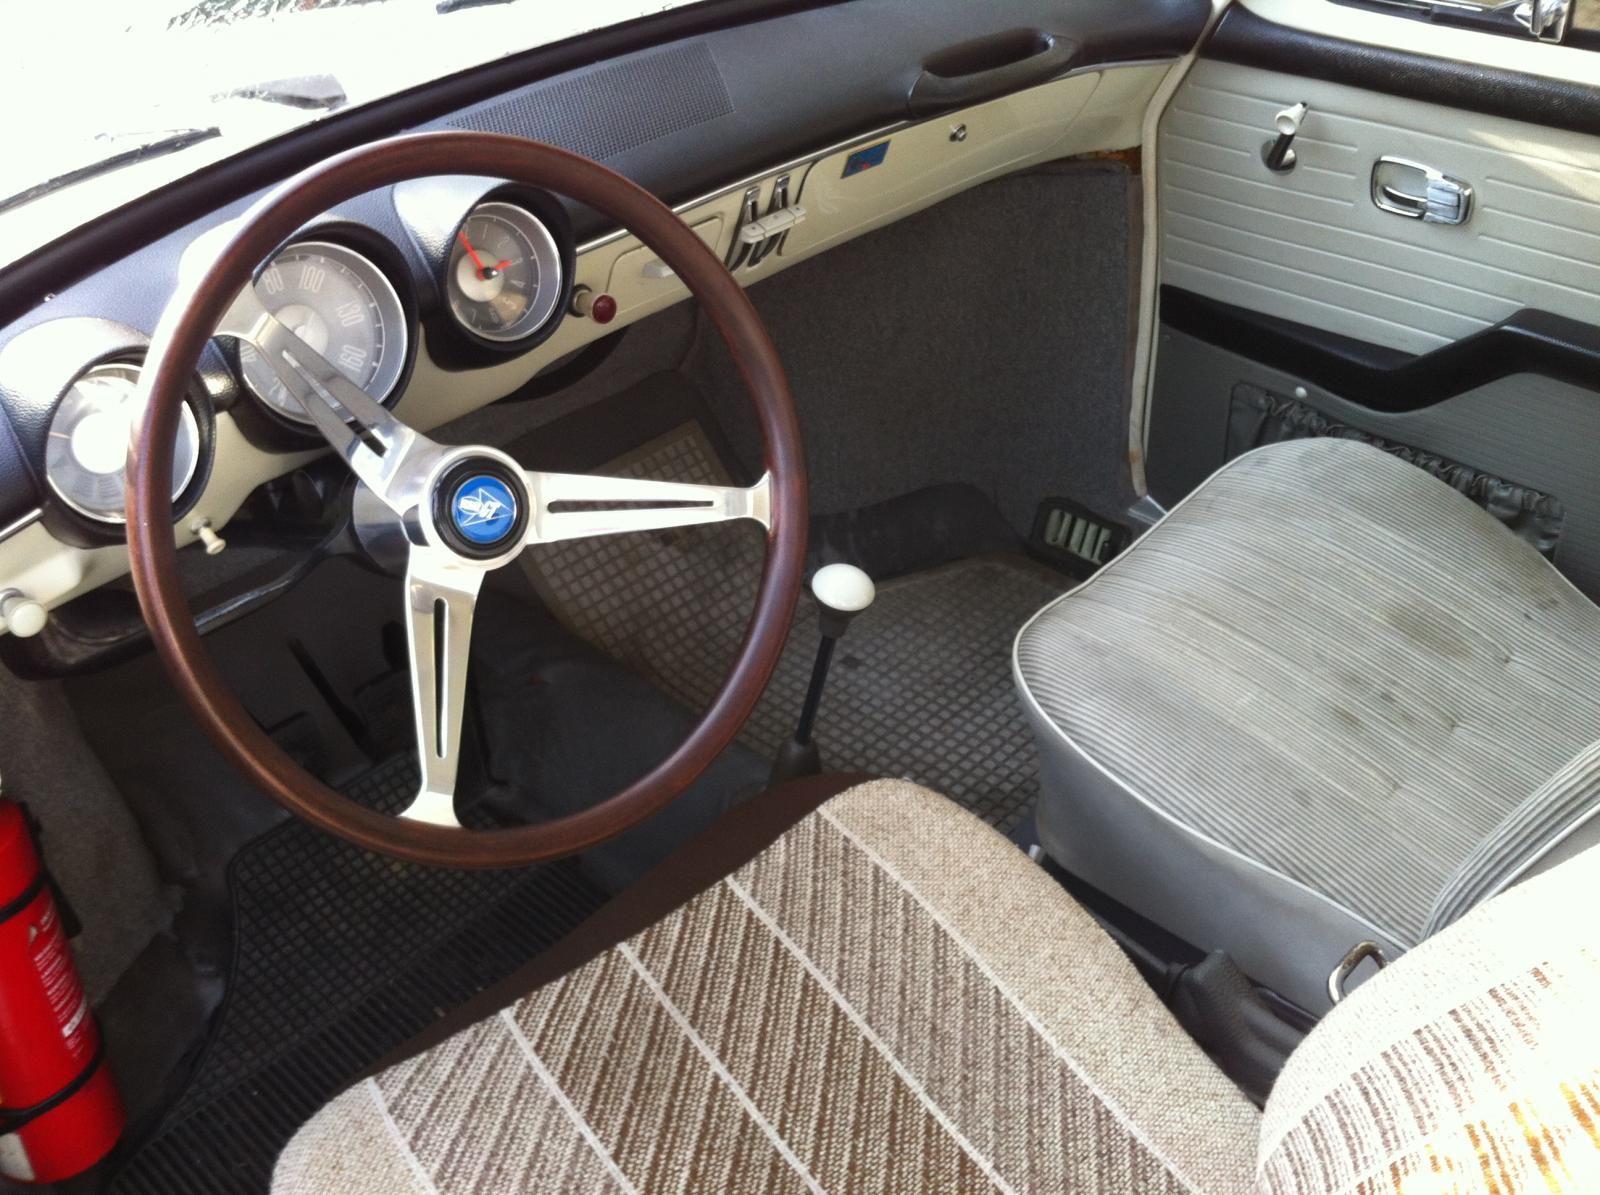 1965 1500S Pearl White with Silver Cord